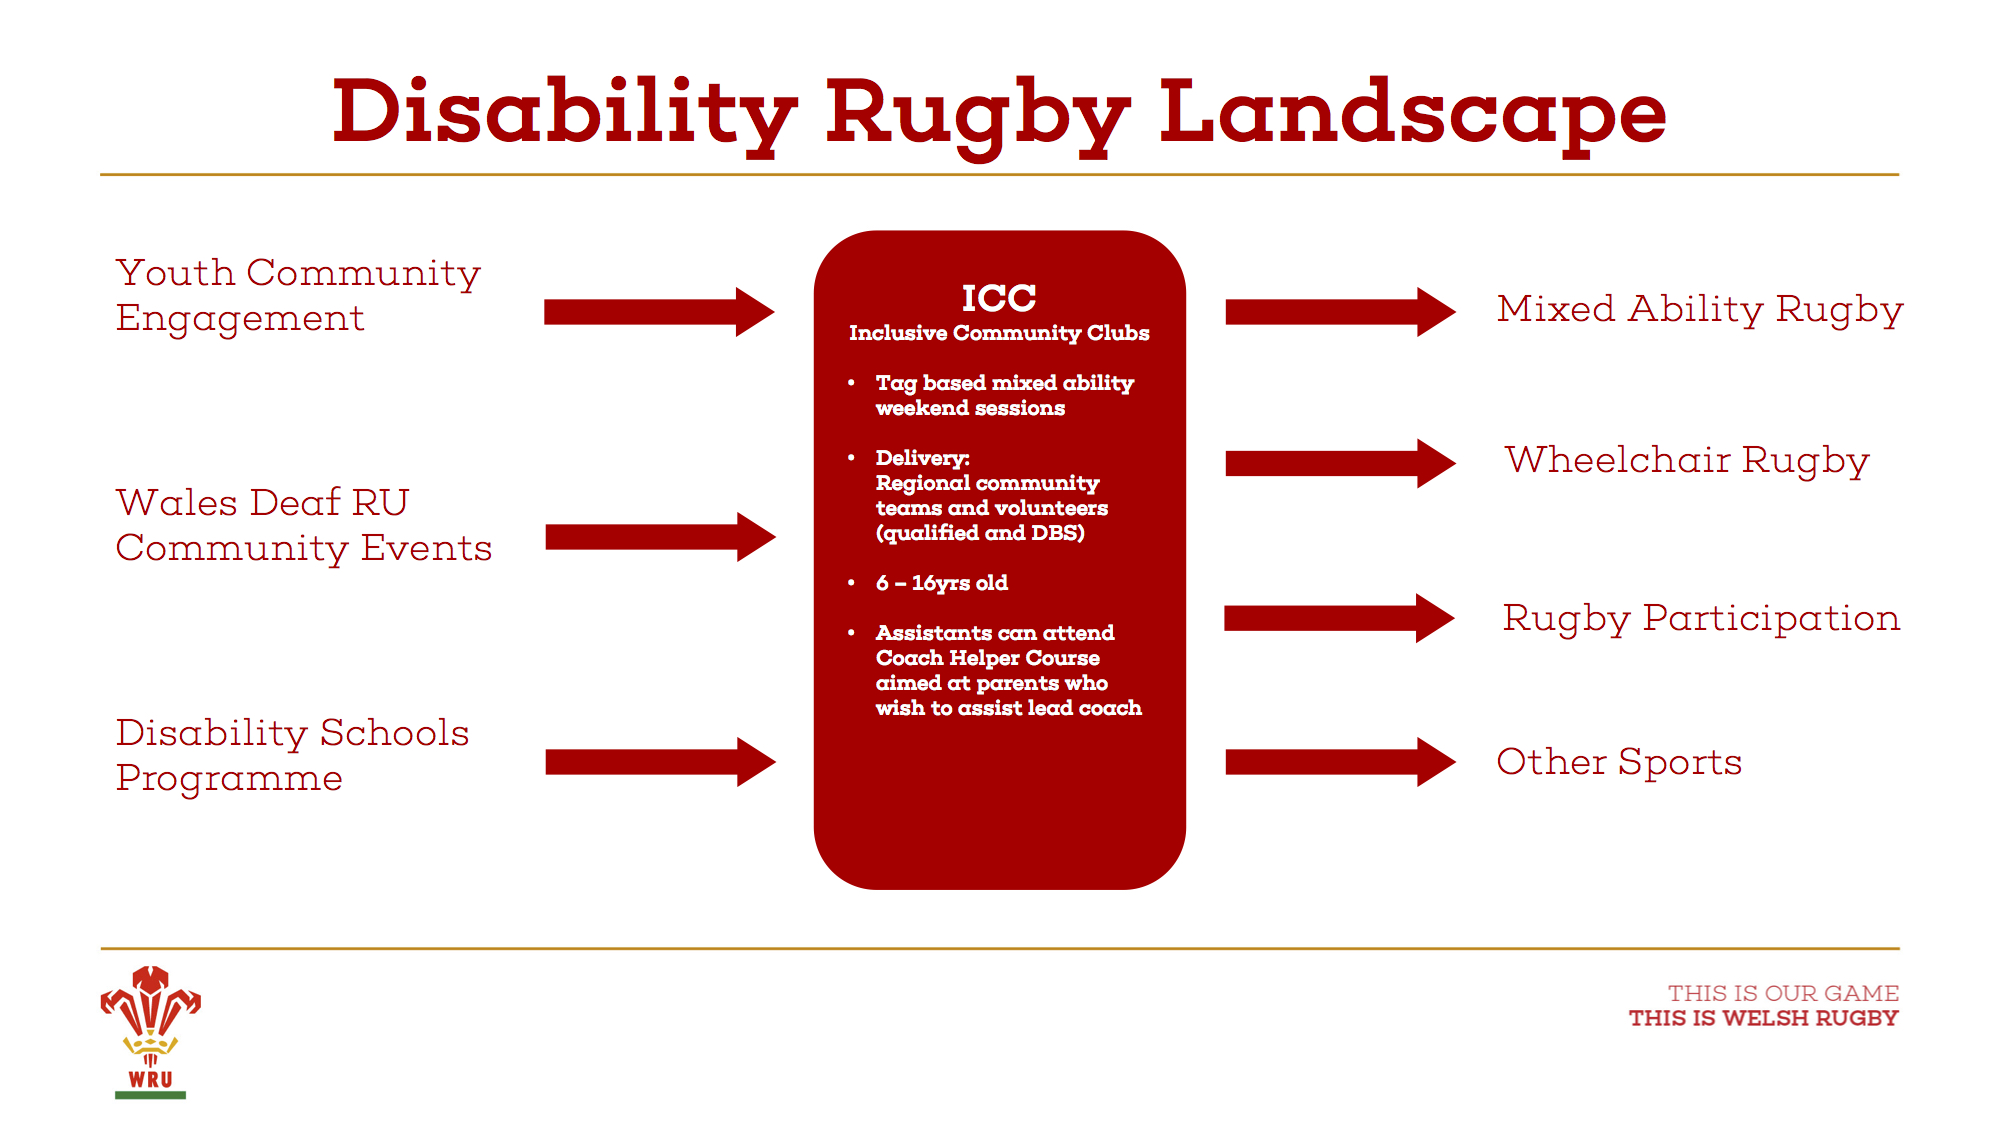 A diagram of the Disability Rugby Landscape in Wales